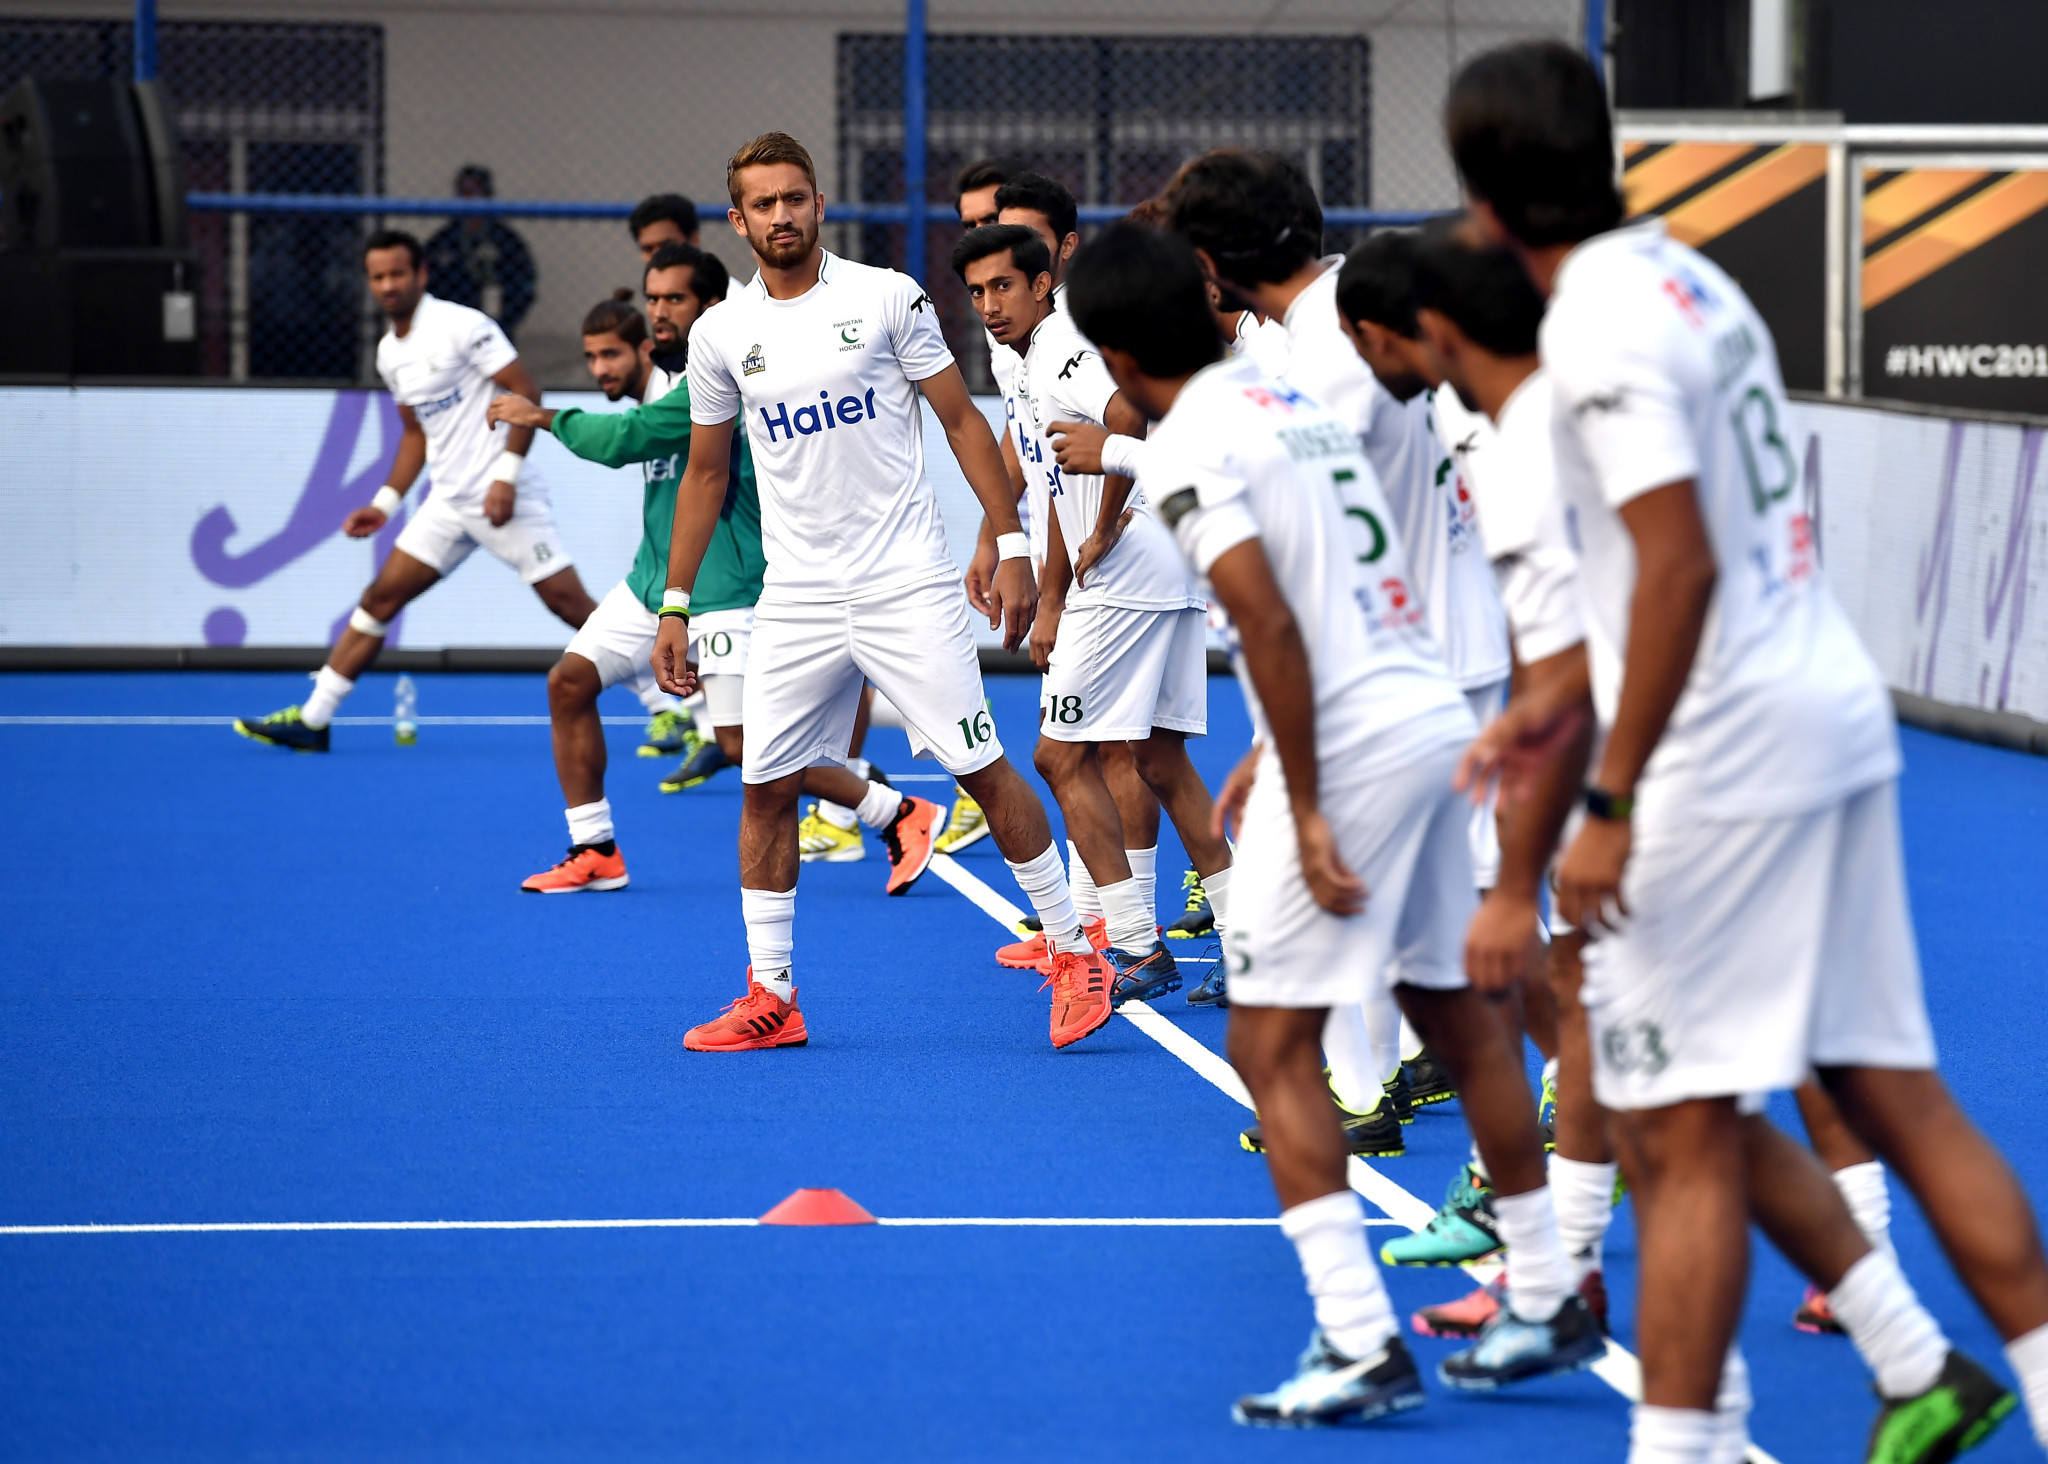 Pakistan hockey has been gripped by a financial crisis which saw the team nearly pull out of last year's World Cup ©Getty Images